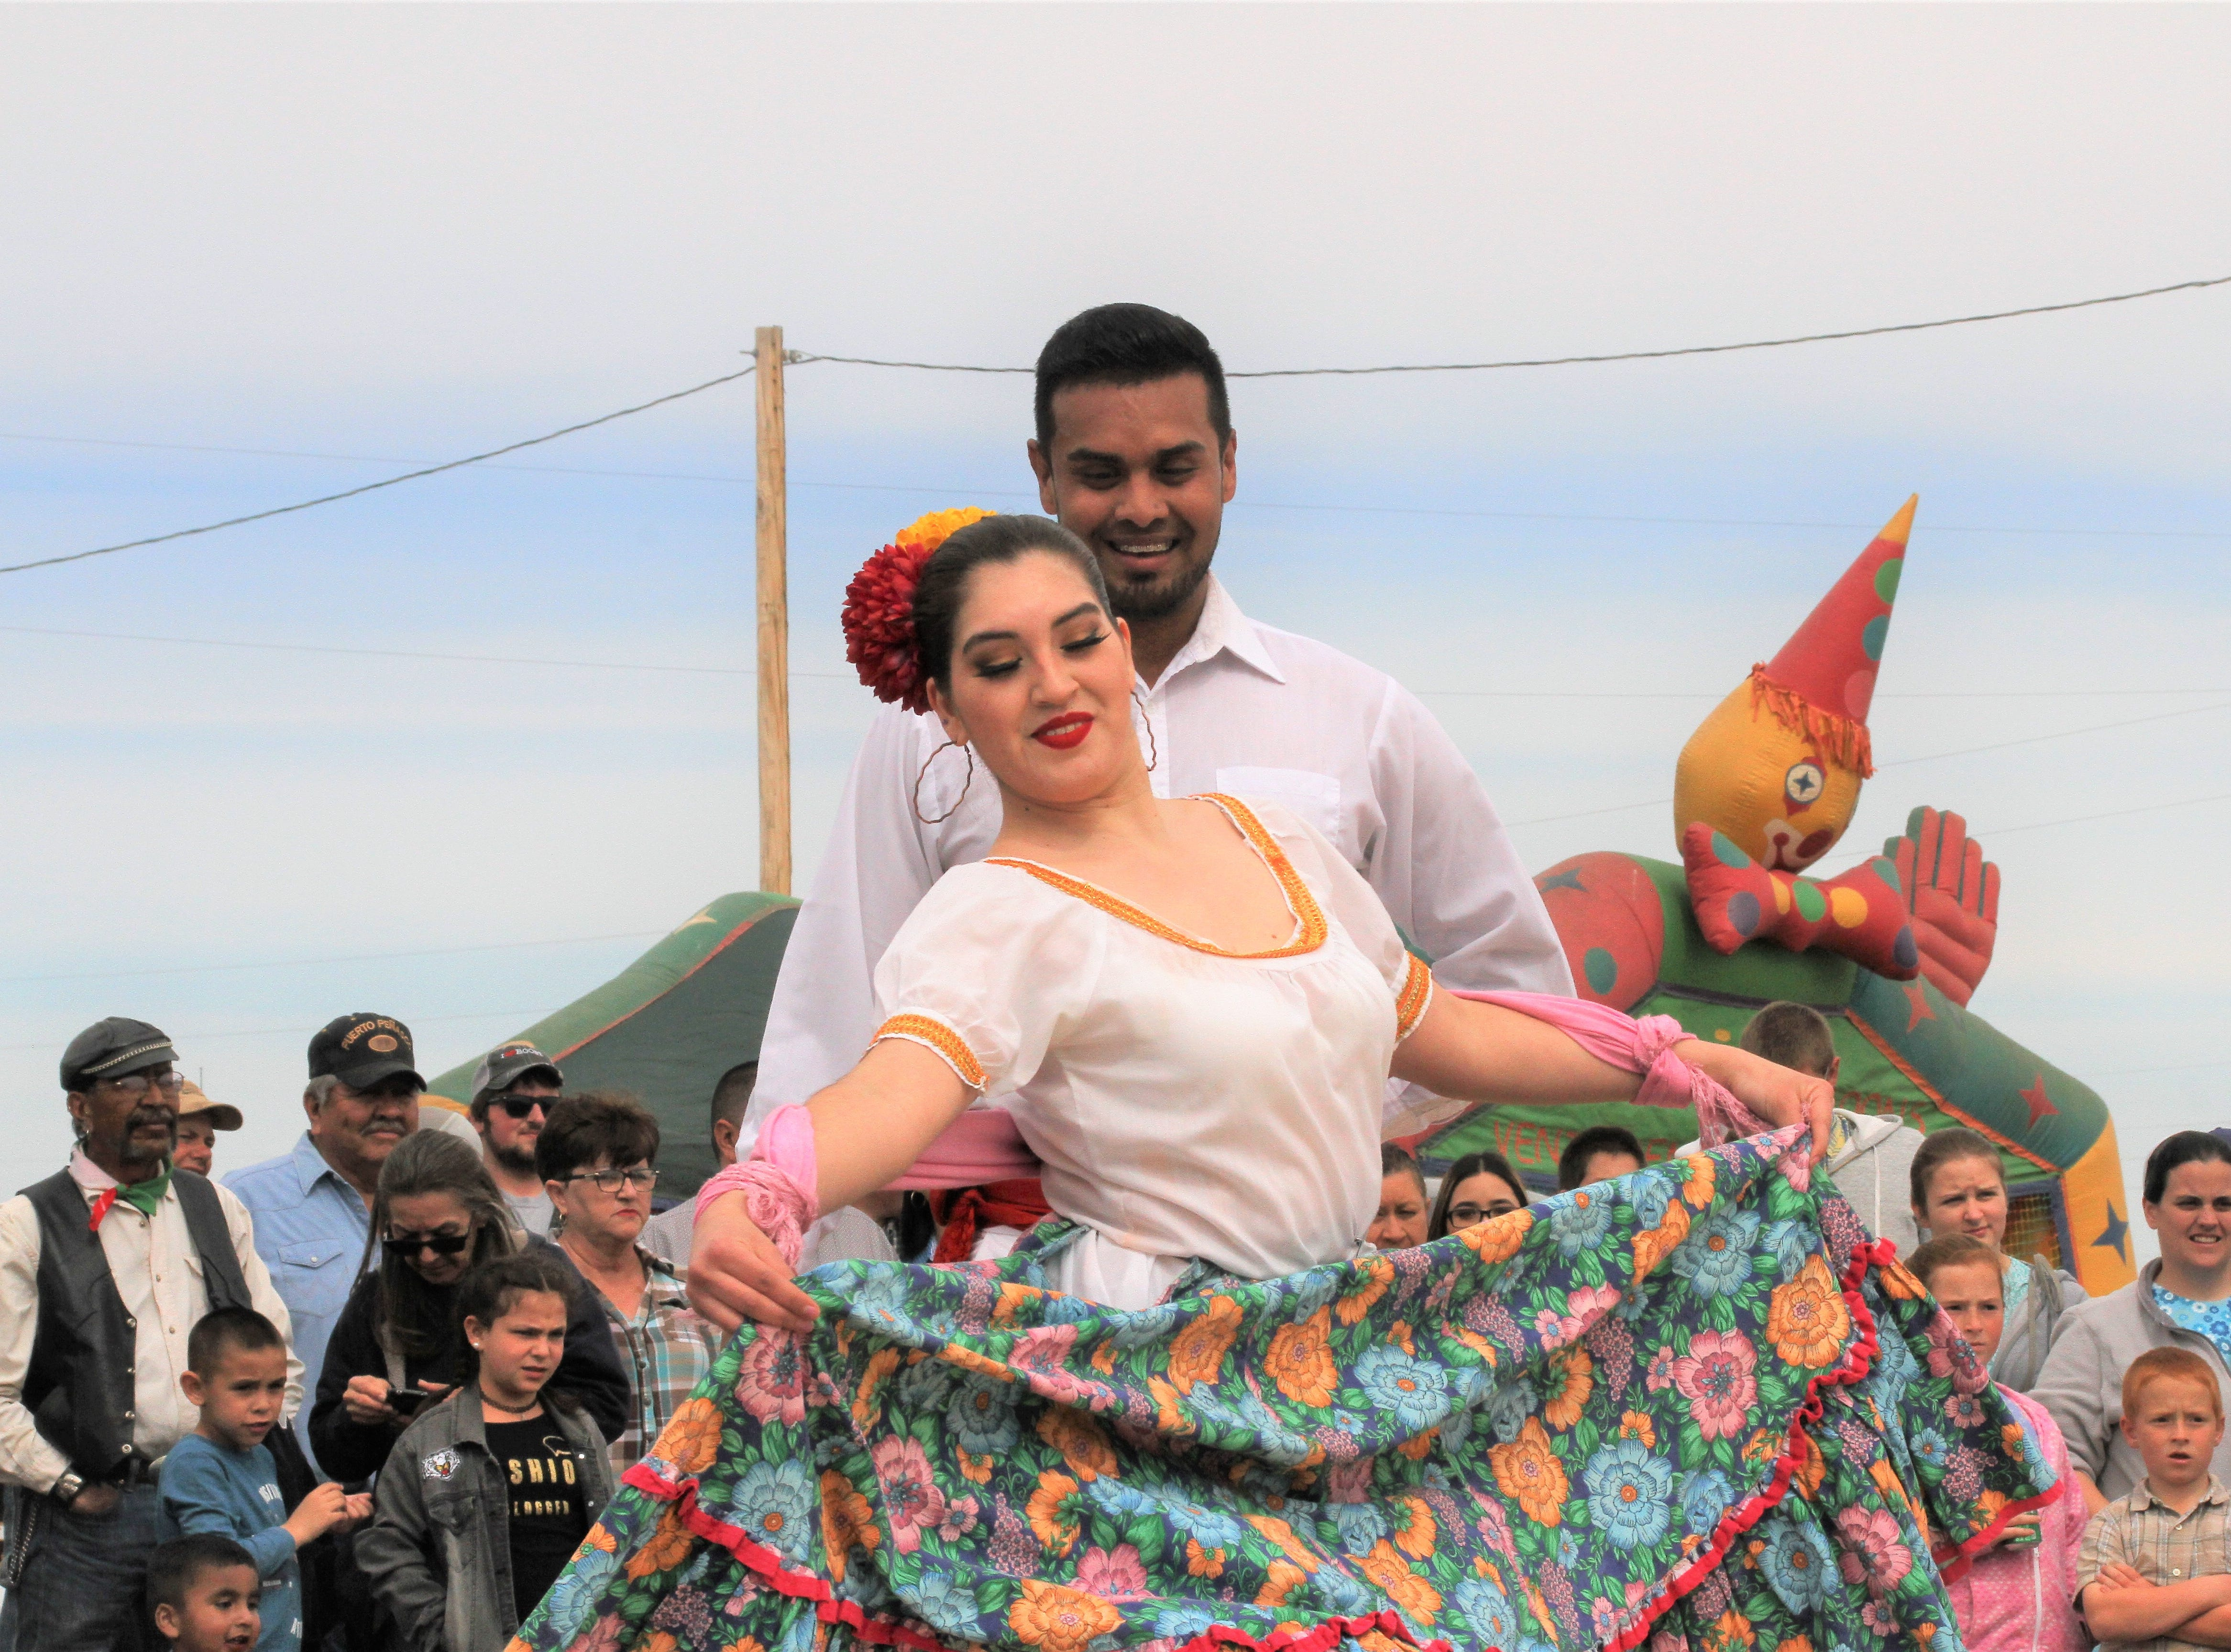 Professional dancers Yire Tellez and her partner Joel Jurado, from the University de Autonoma de Chihuahua, perform balet folklorico.